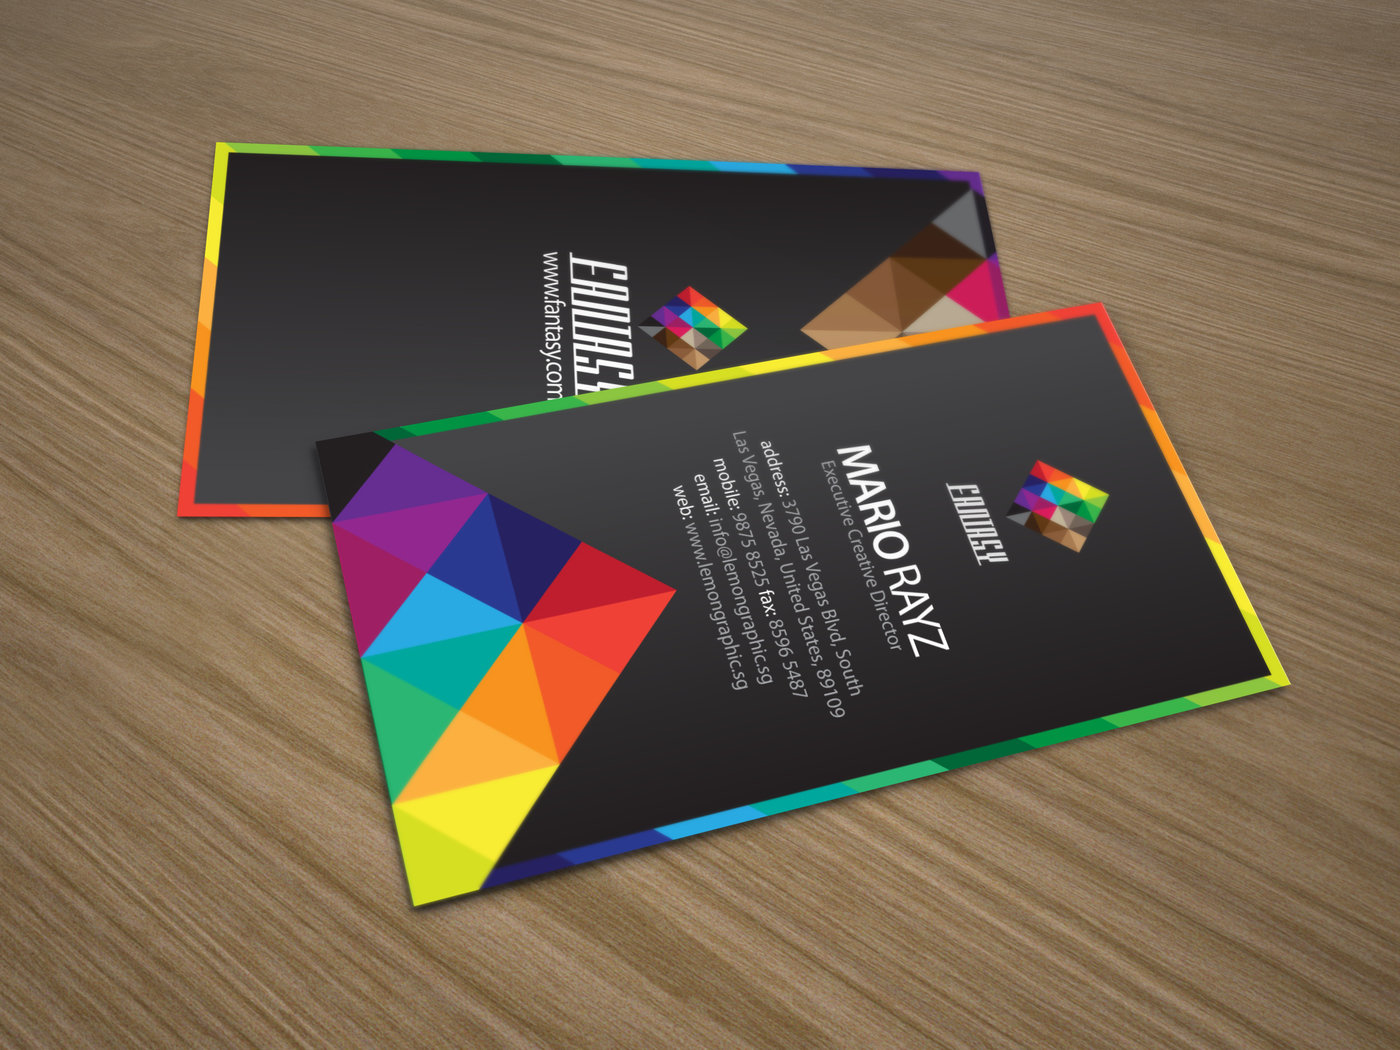 Creative business card by rayz ong at coroflot fantasy corporate business card to catch your clients attention to make them remember and outshine from the rest of the boring cards in their holder reheart Image collections